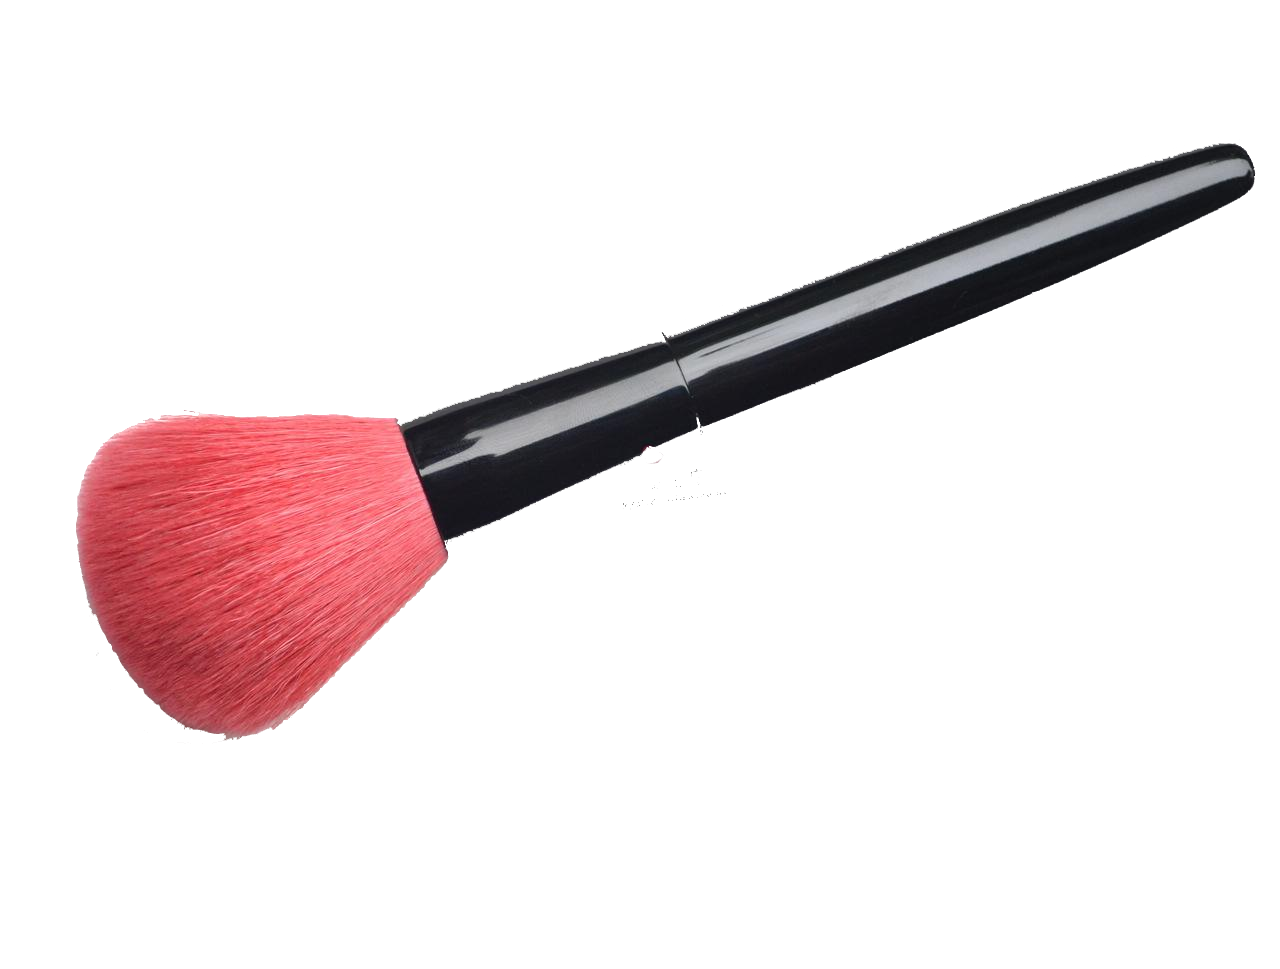 Makeup Brush Png image #7206